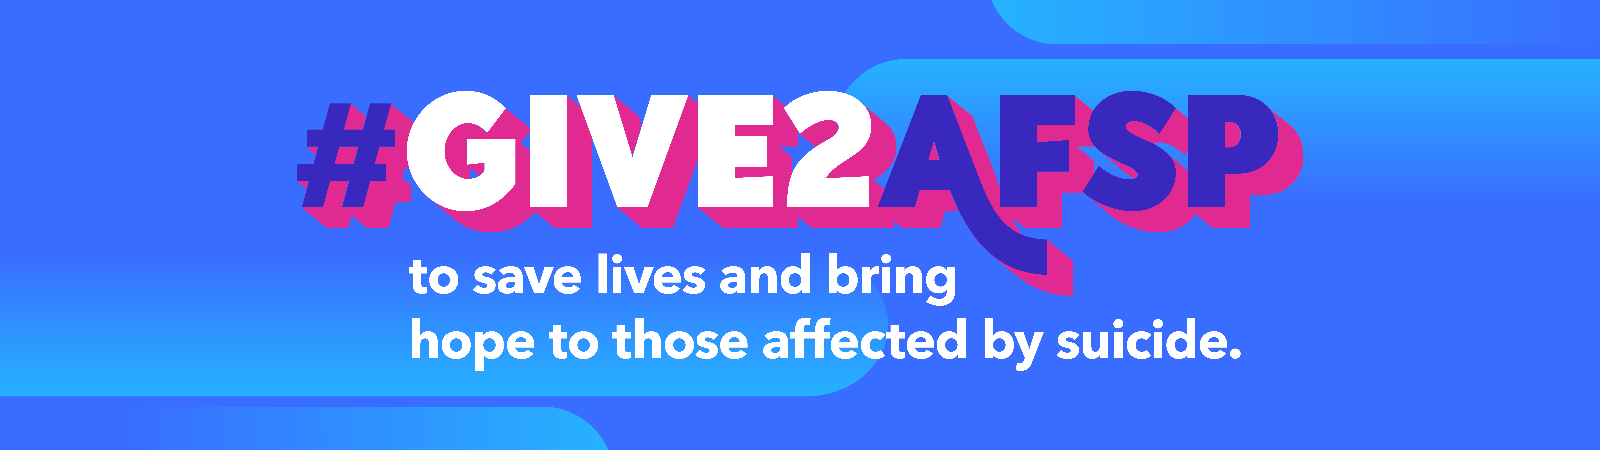 GIVE2AFSP to save lives and bring hope to those affected by suicide.